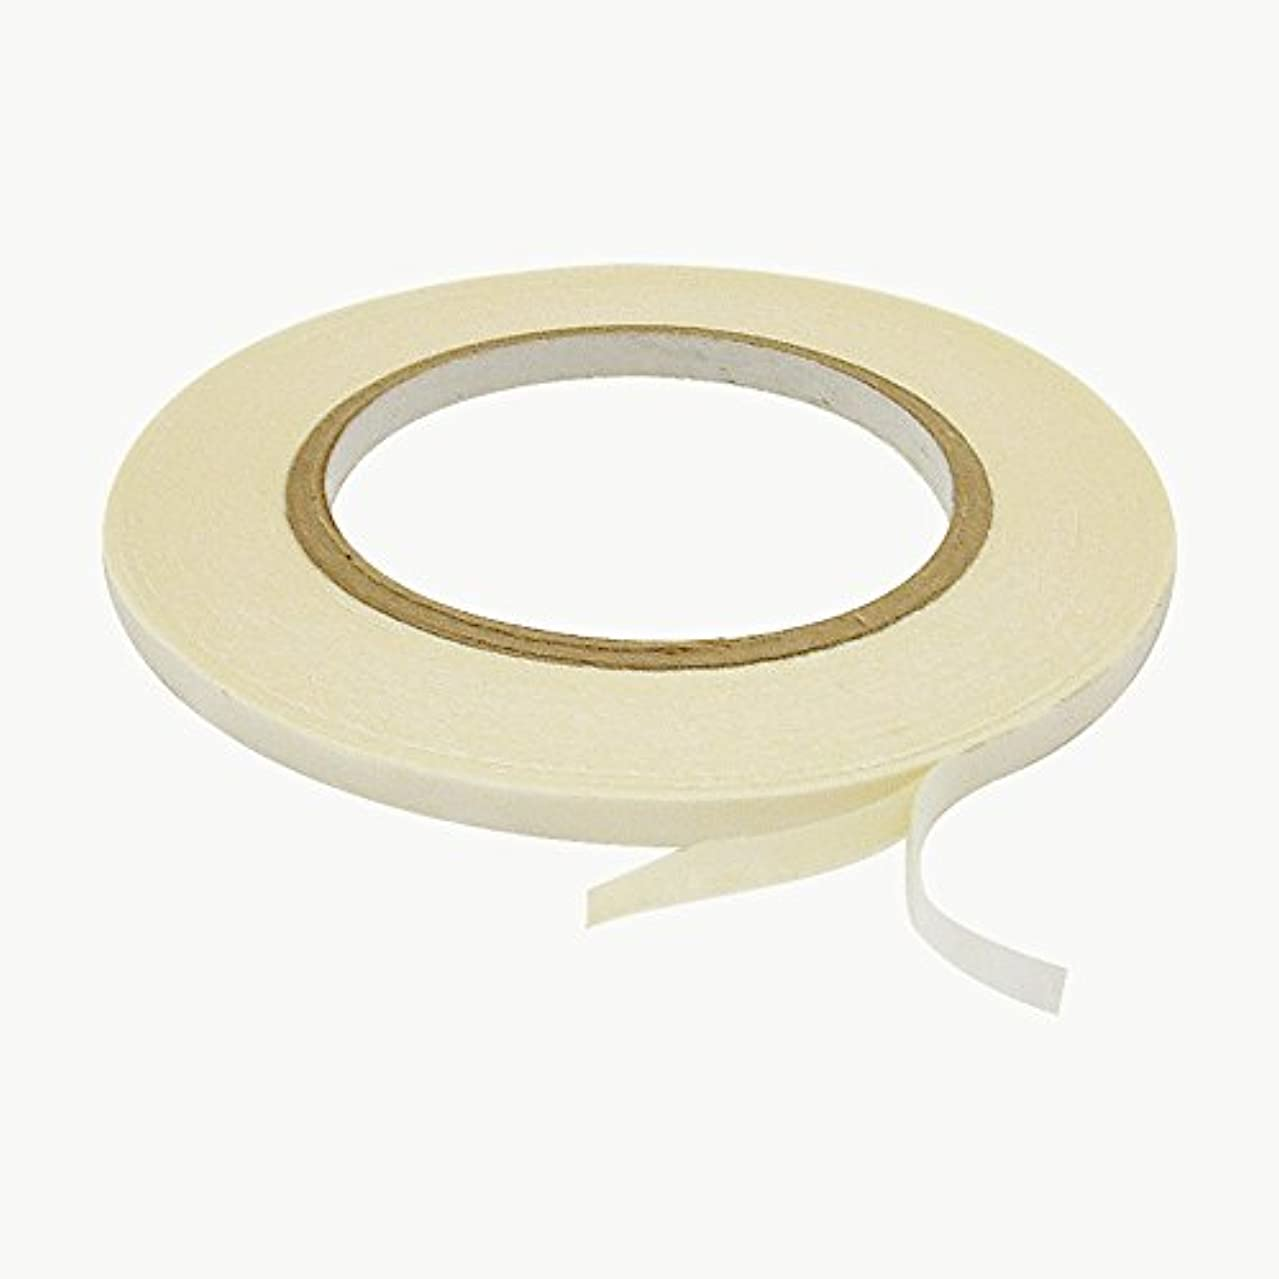 J.V. Converting DCP-01/NAT02536 JVCC DCP-01 Double Coated Crepe Paper Tape: 1/4